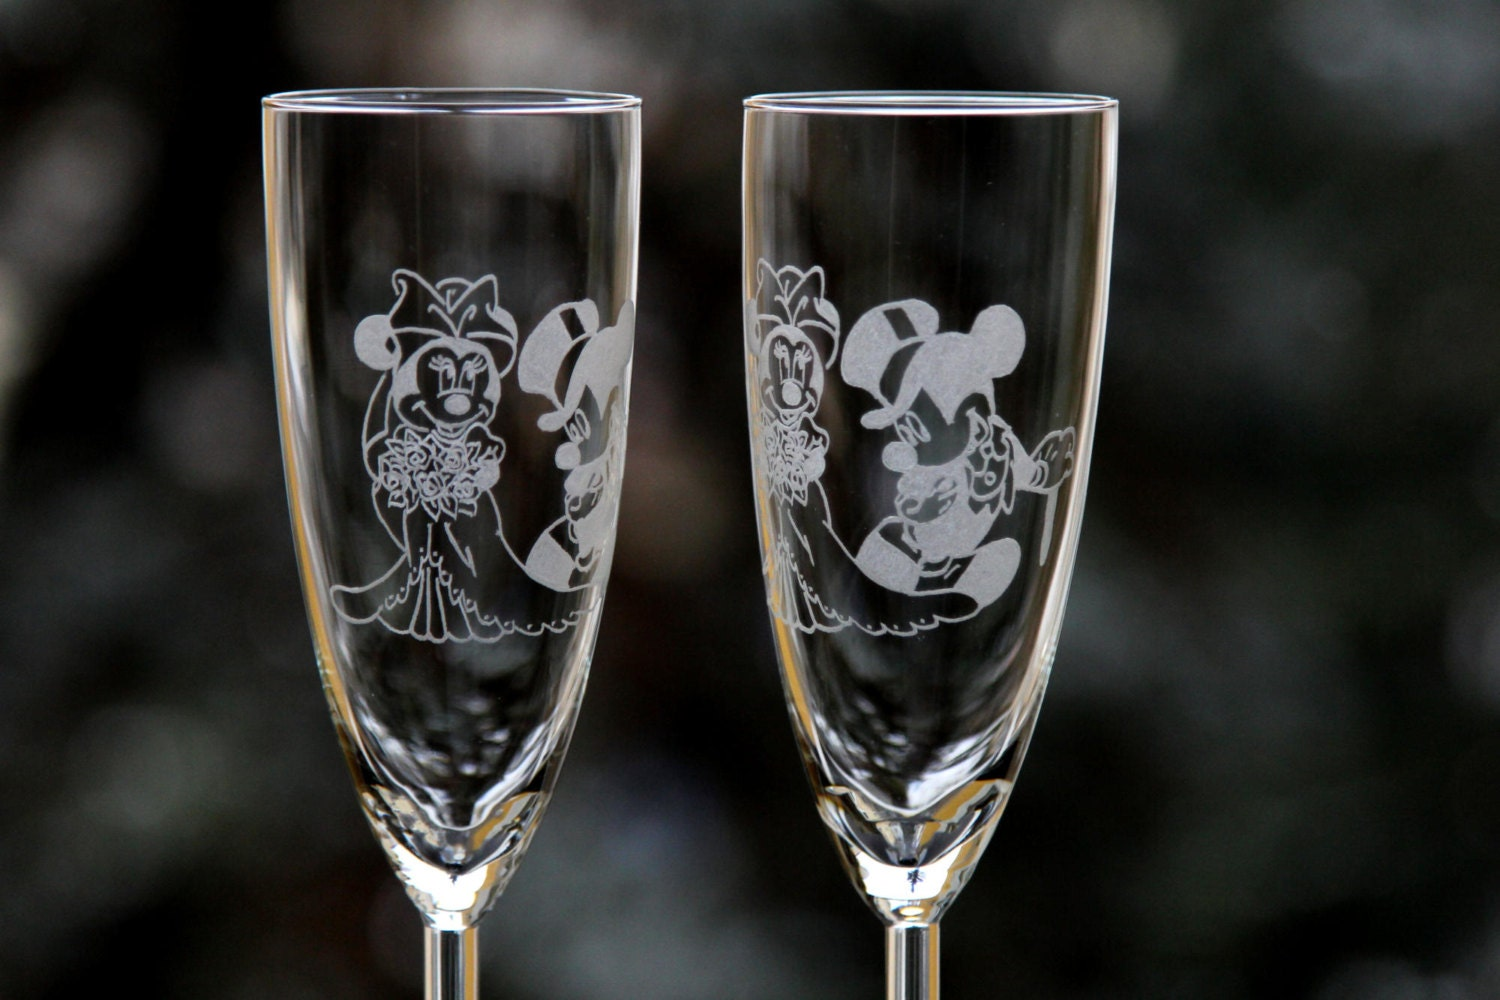 2 Engraved Wedding Glasses Mickey And Minnie Mouse Bride And